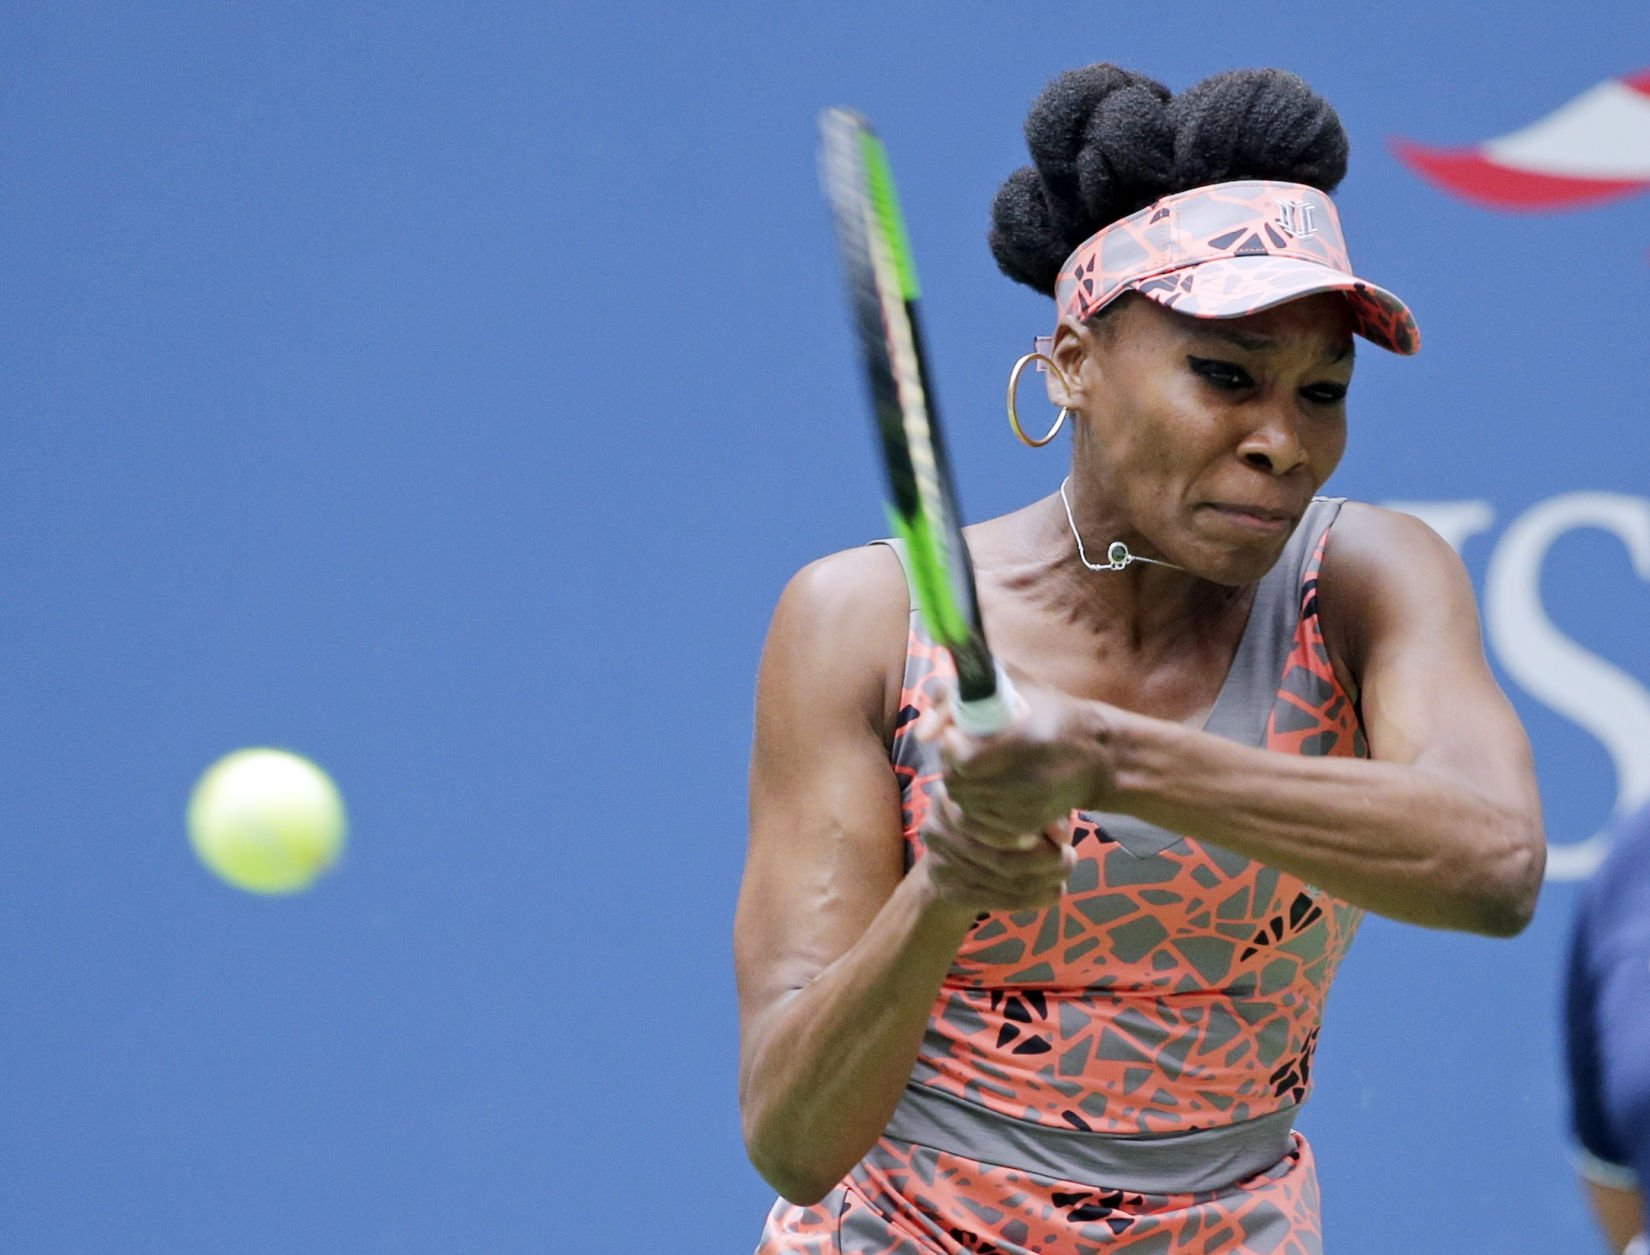 Venus Williams kicks off US Open with thrilling win